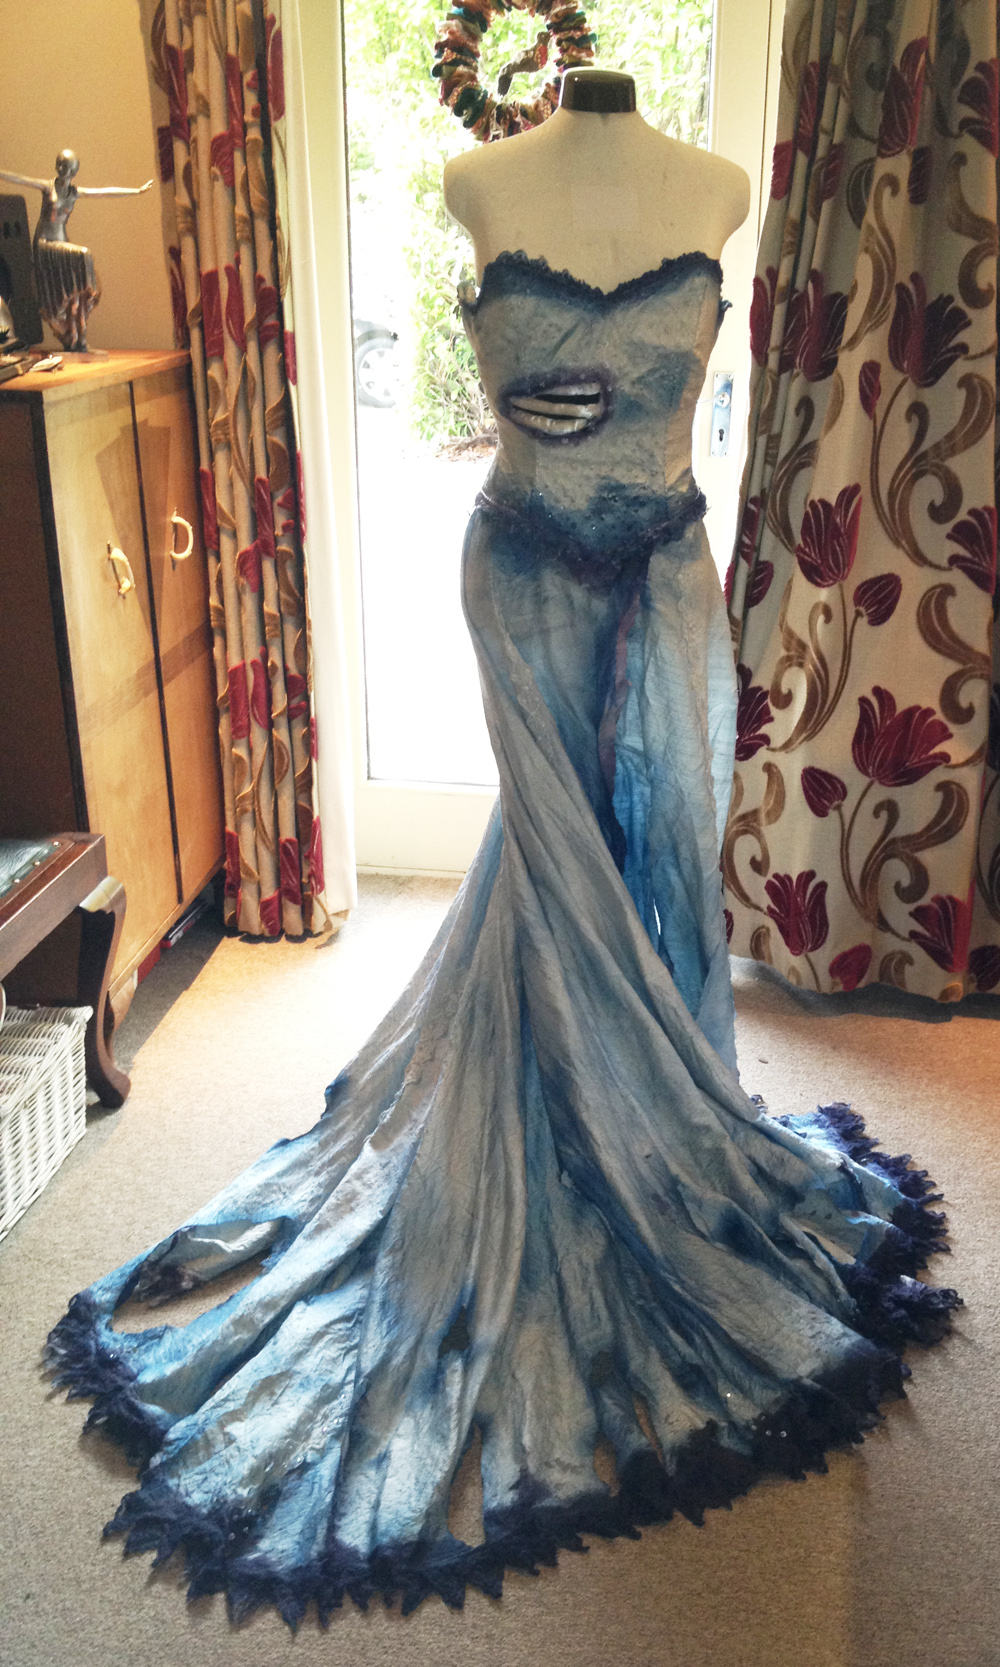 Corpse Bride Themed Wedding Dresses - Wedding Dresses Asian